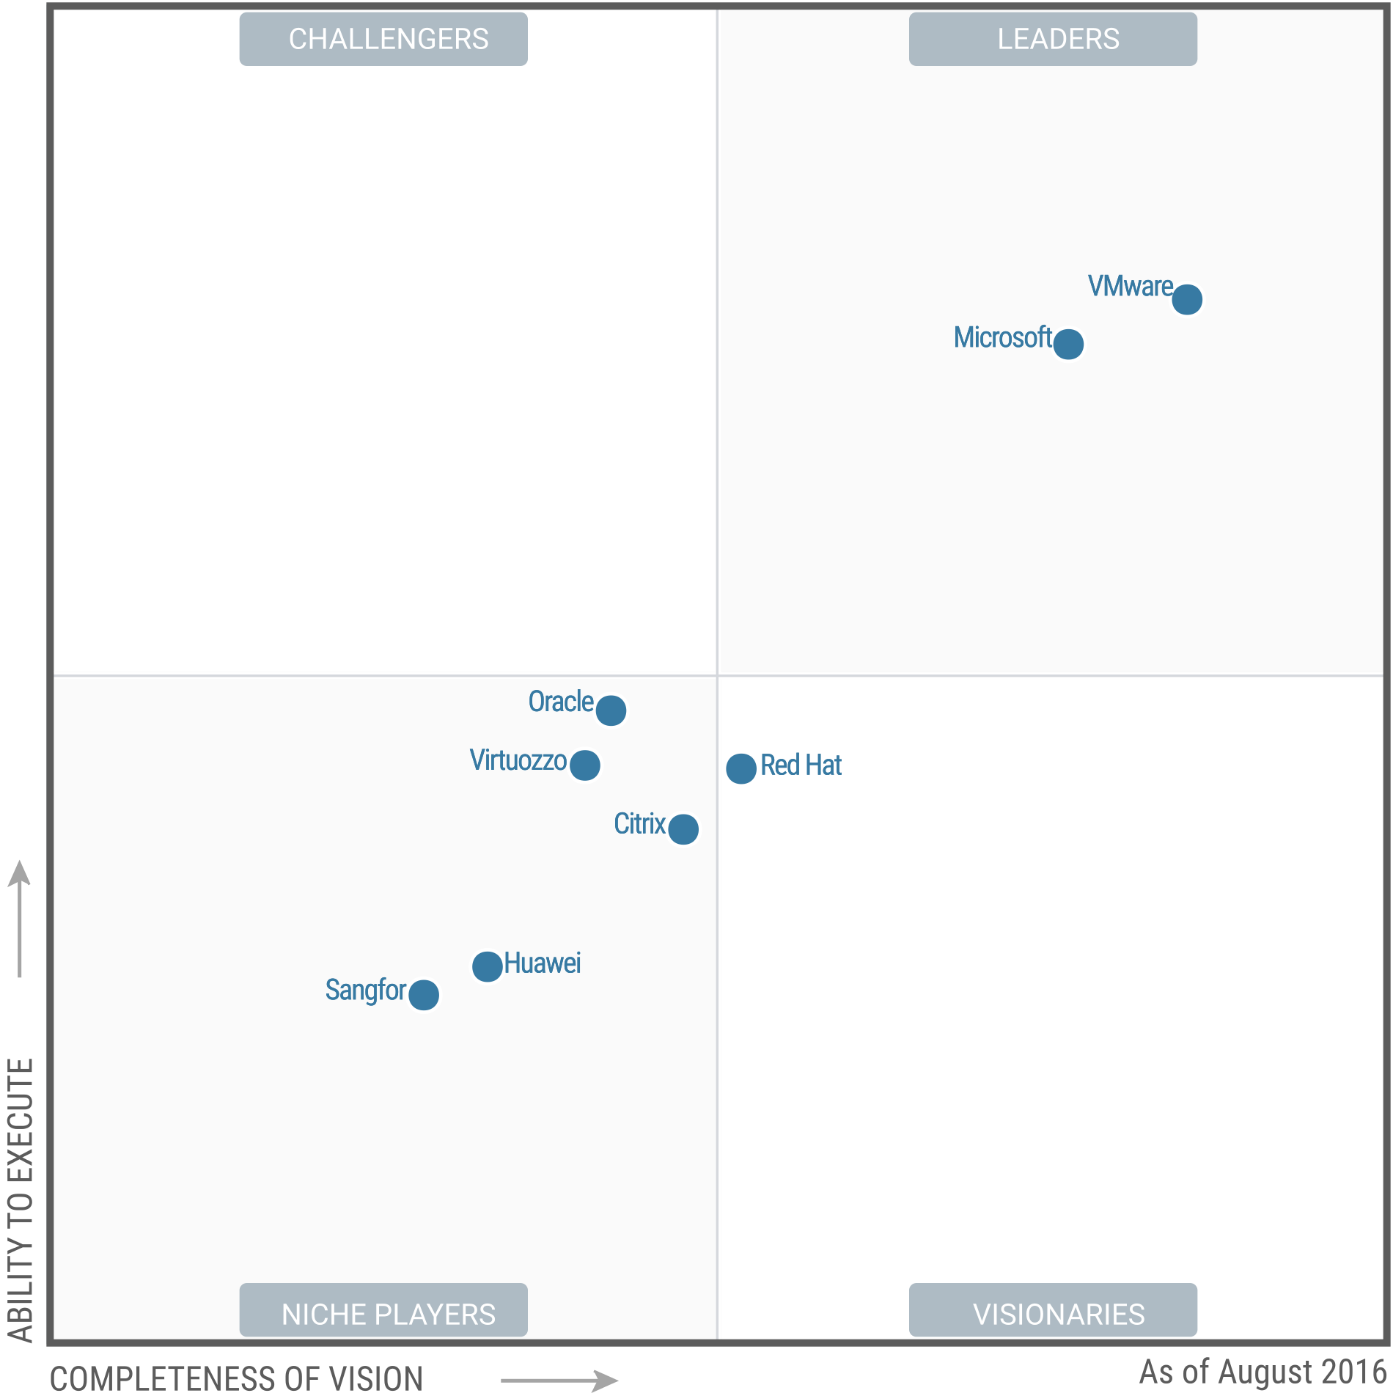 Virtualization market distribution according to Gartner